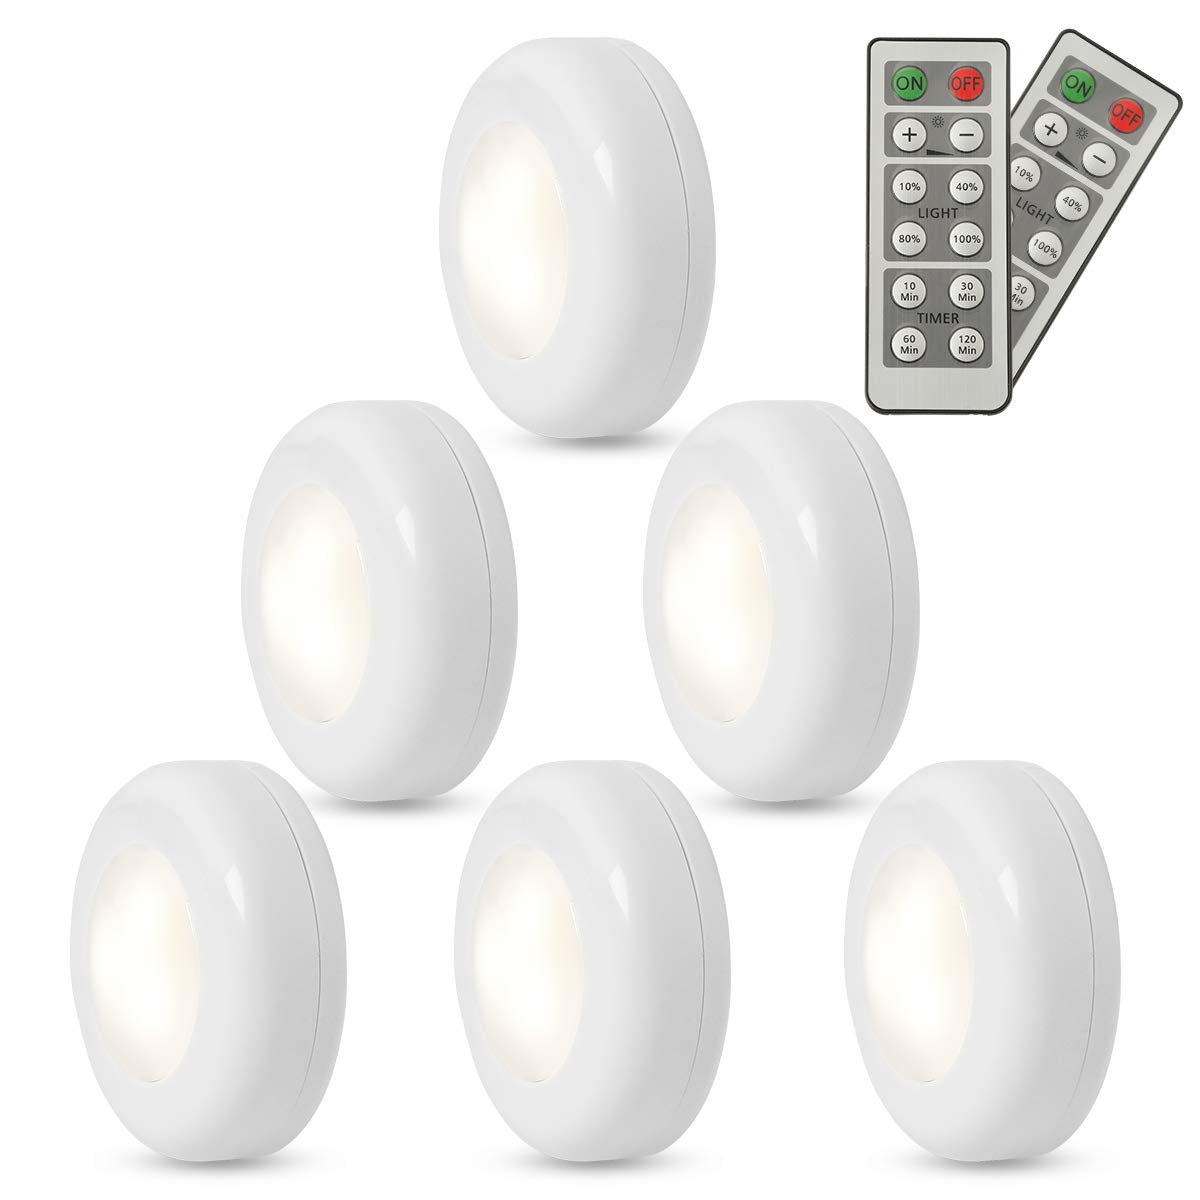 FXWSKY LED Puck Lights Battery Operated 6 Pack, Under Cabinet Lighting Wireless with Remote Control Timer Function Closet Light 4000k by FXWSKY